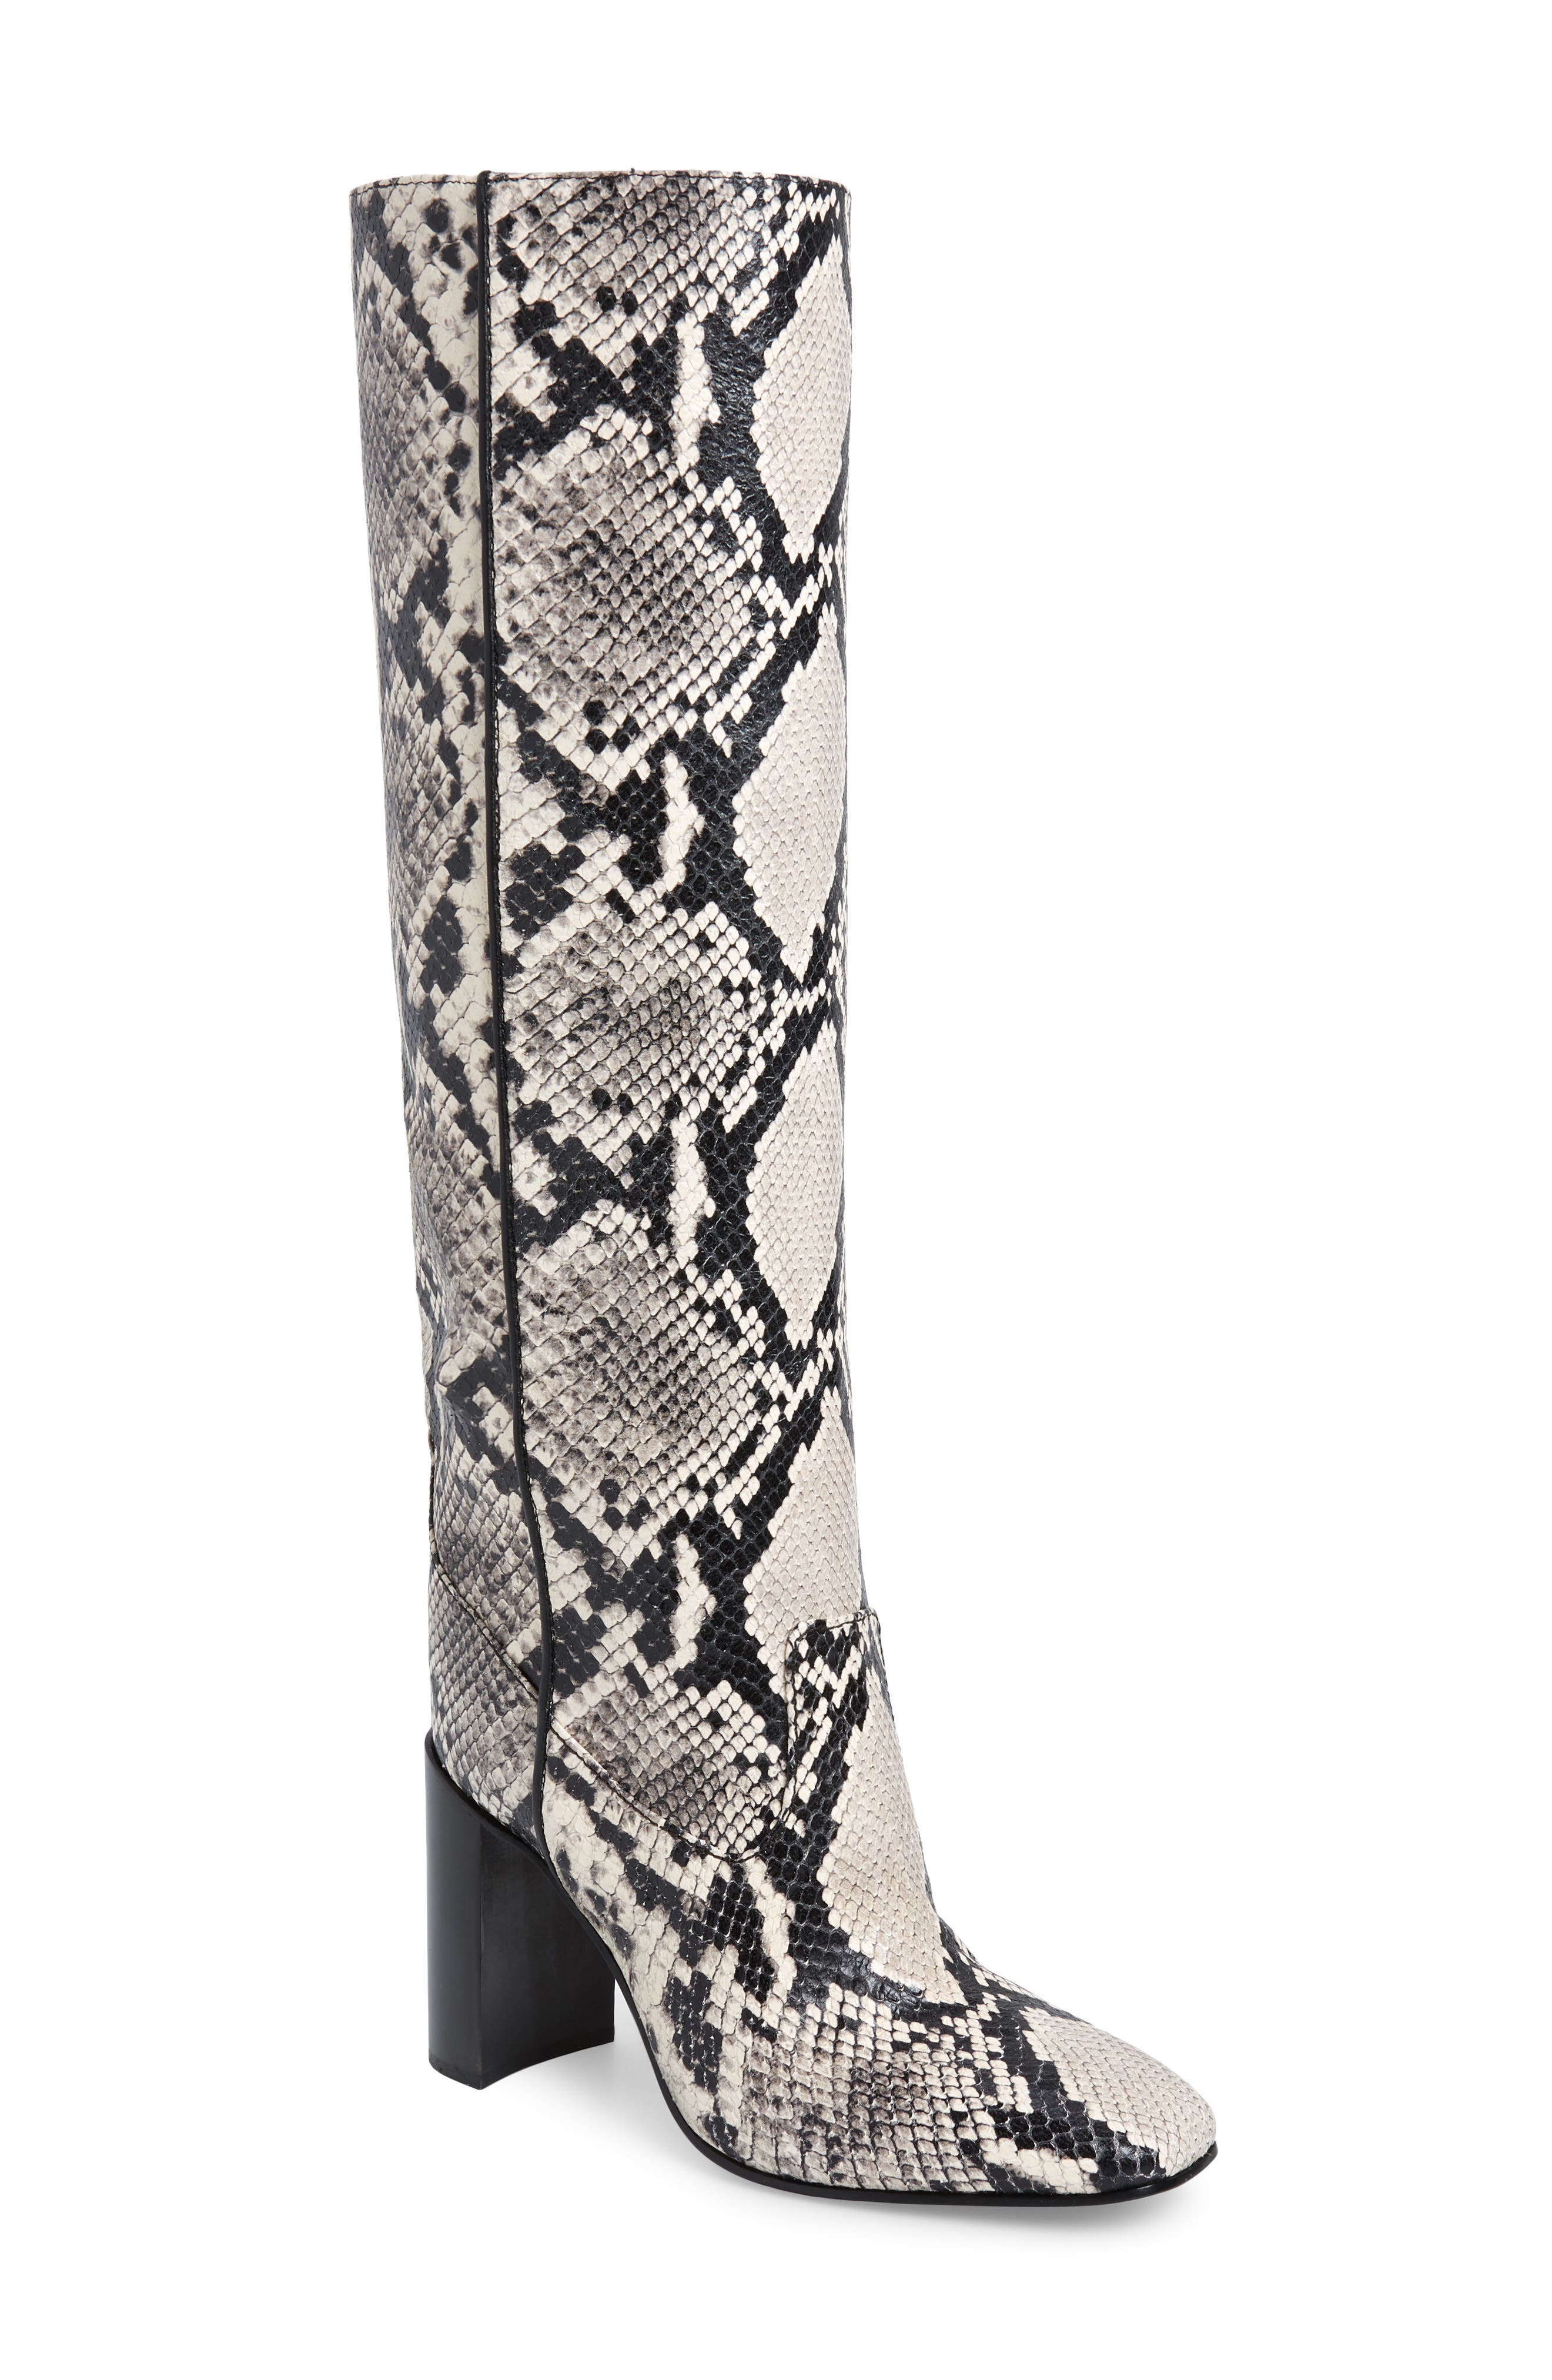 Rag & Bone Aslen Tall Boot, Black